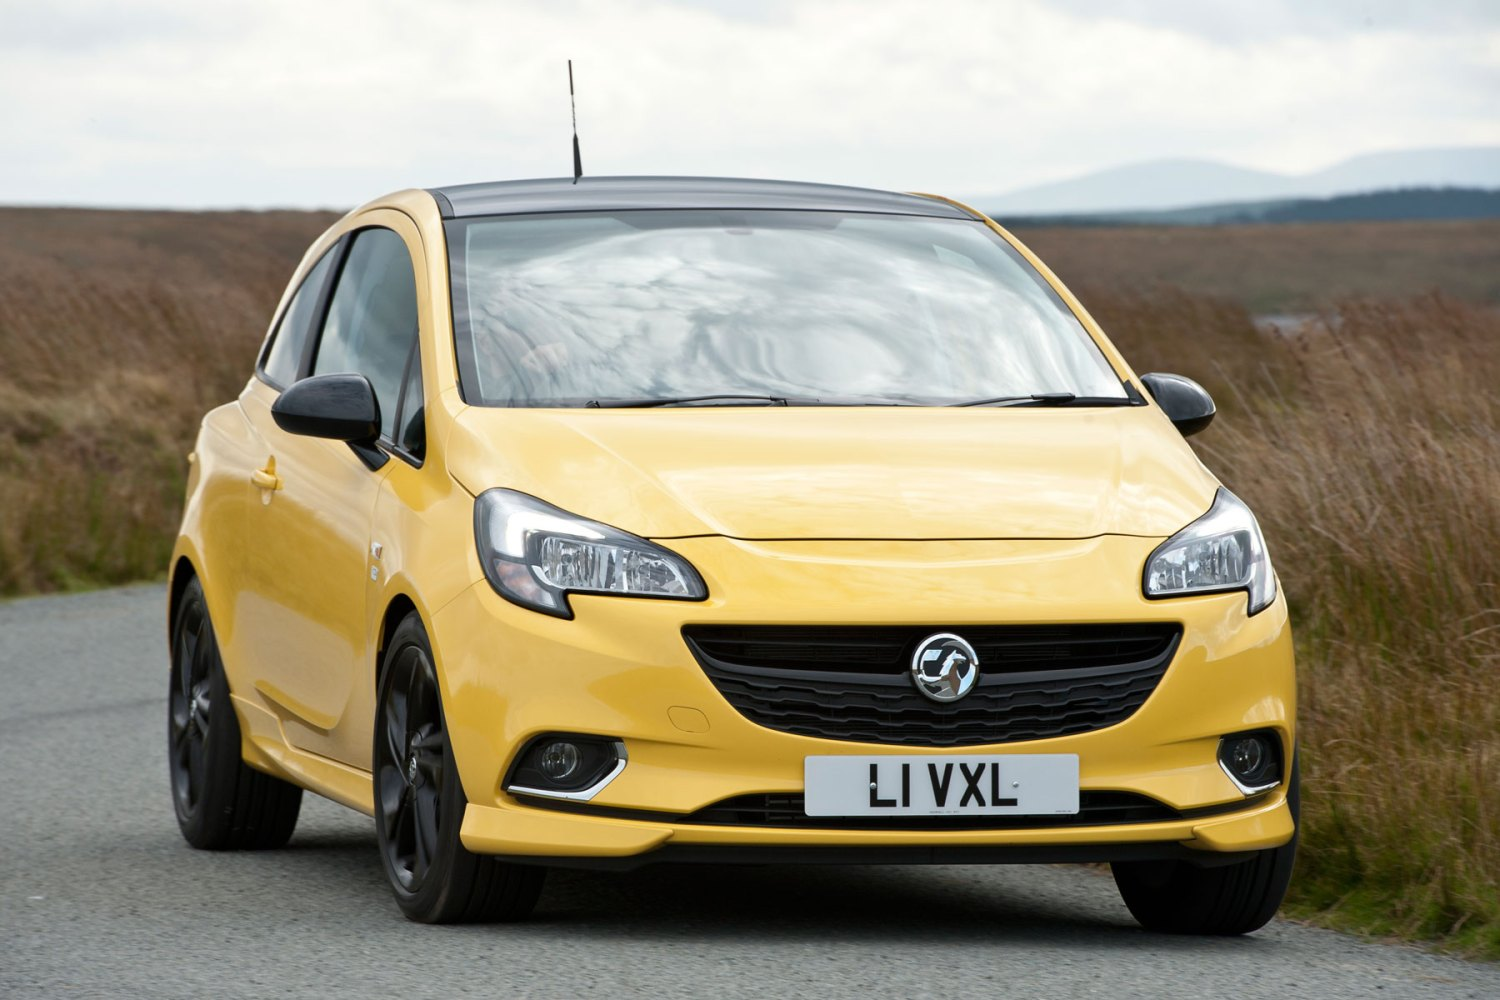 The 20 best first cars: Vauxhall Corsa